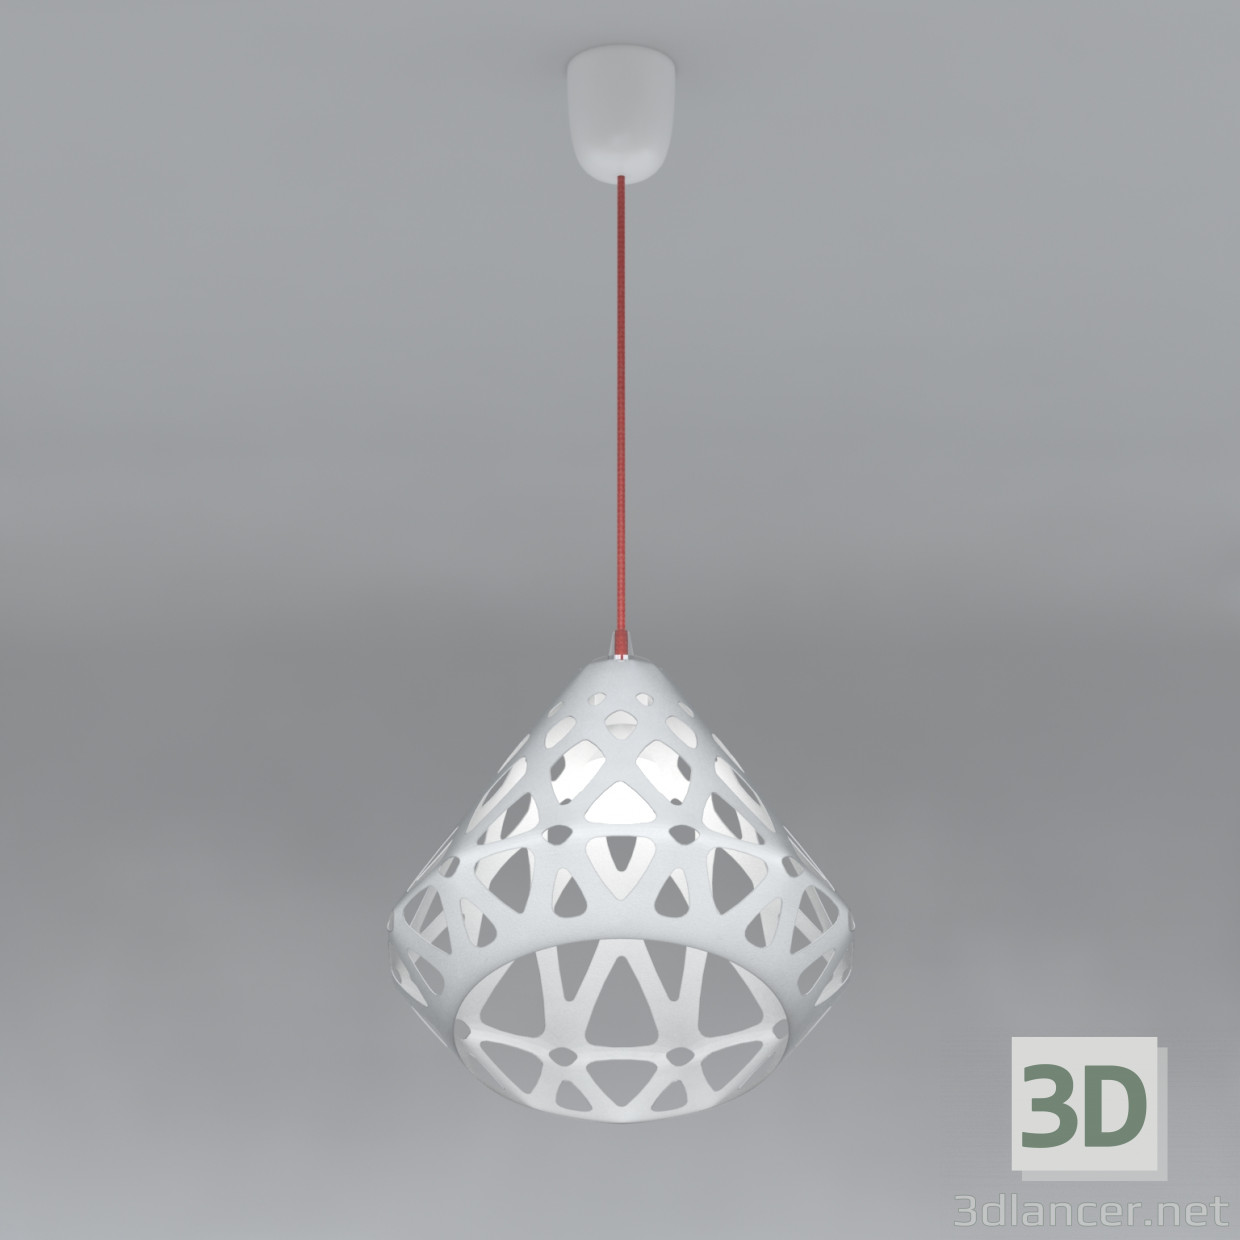 3d modeling ZAHA hanging lamp LIGHT model free download